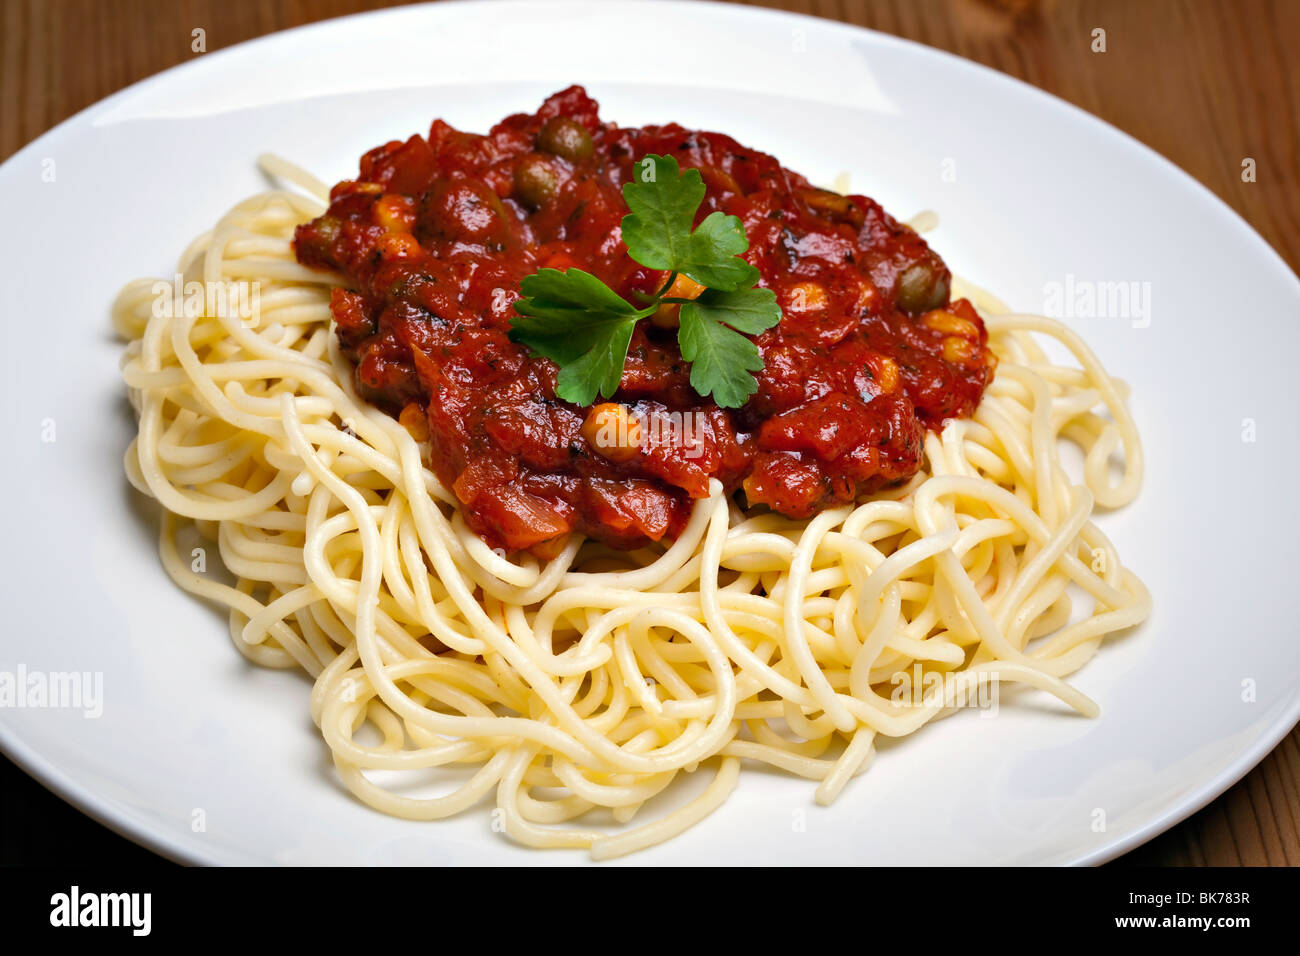 spaghetti bolognese traditional italian food stock photo 29048875 alamy. Black Bedroom Furniture Sets. Home Design Ideas